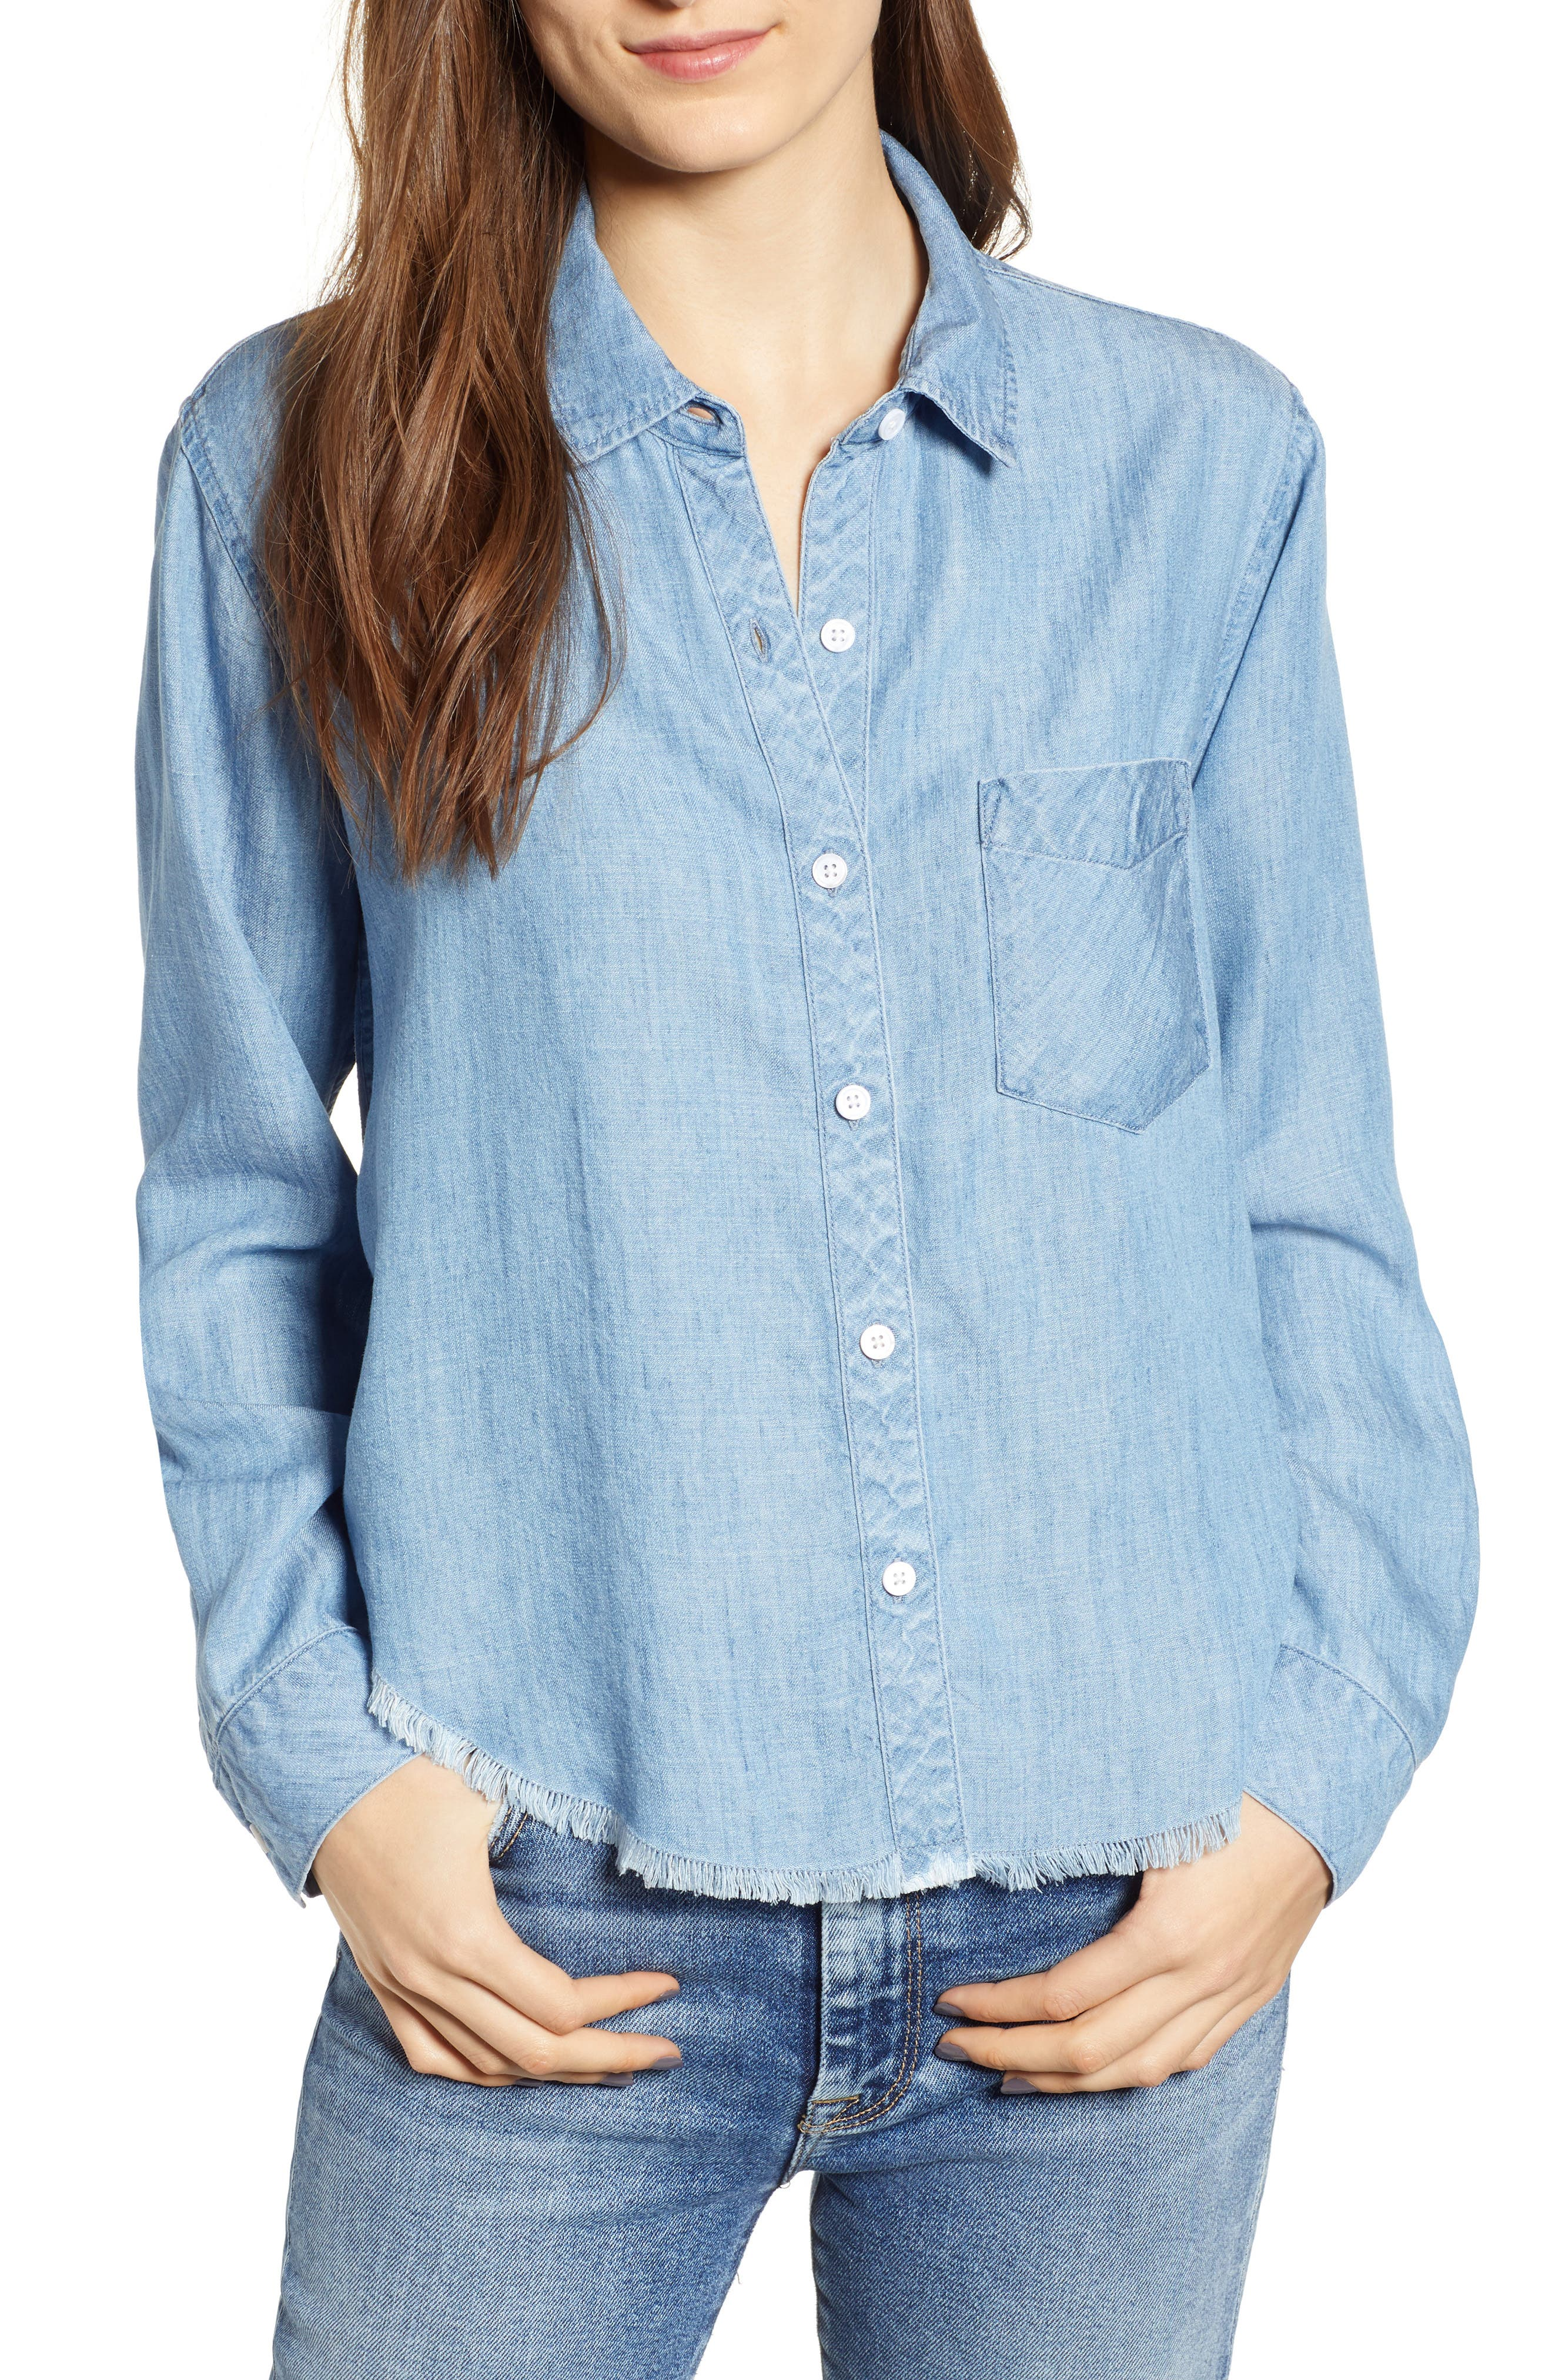 RAILS Ingrid Button-Front Chambray Shirt W/ Studded Trim in Medium Vintage